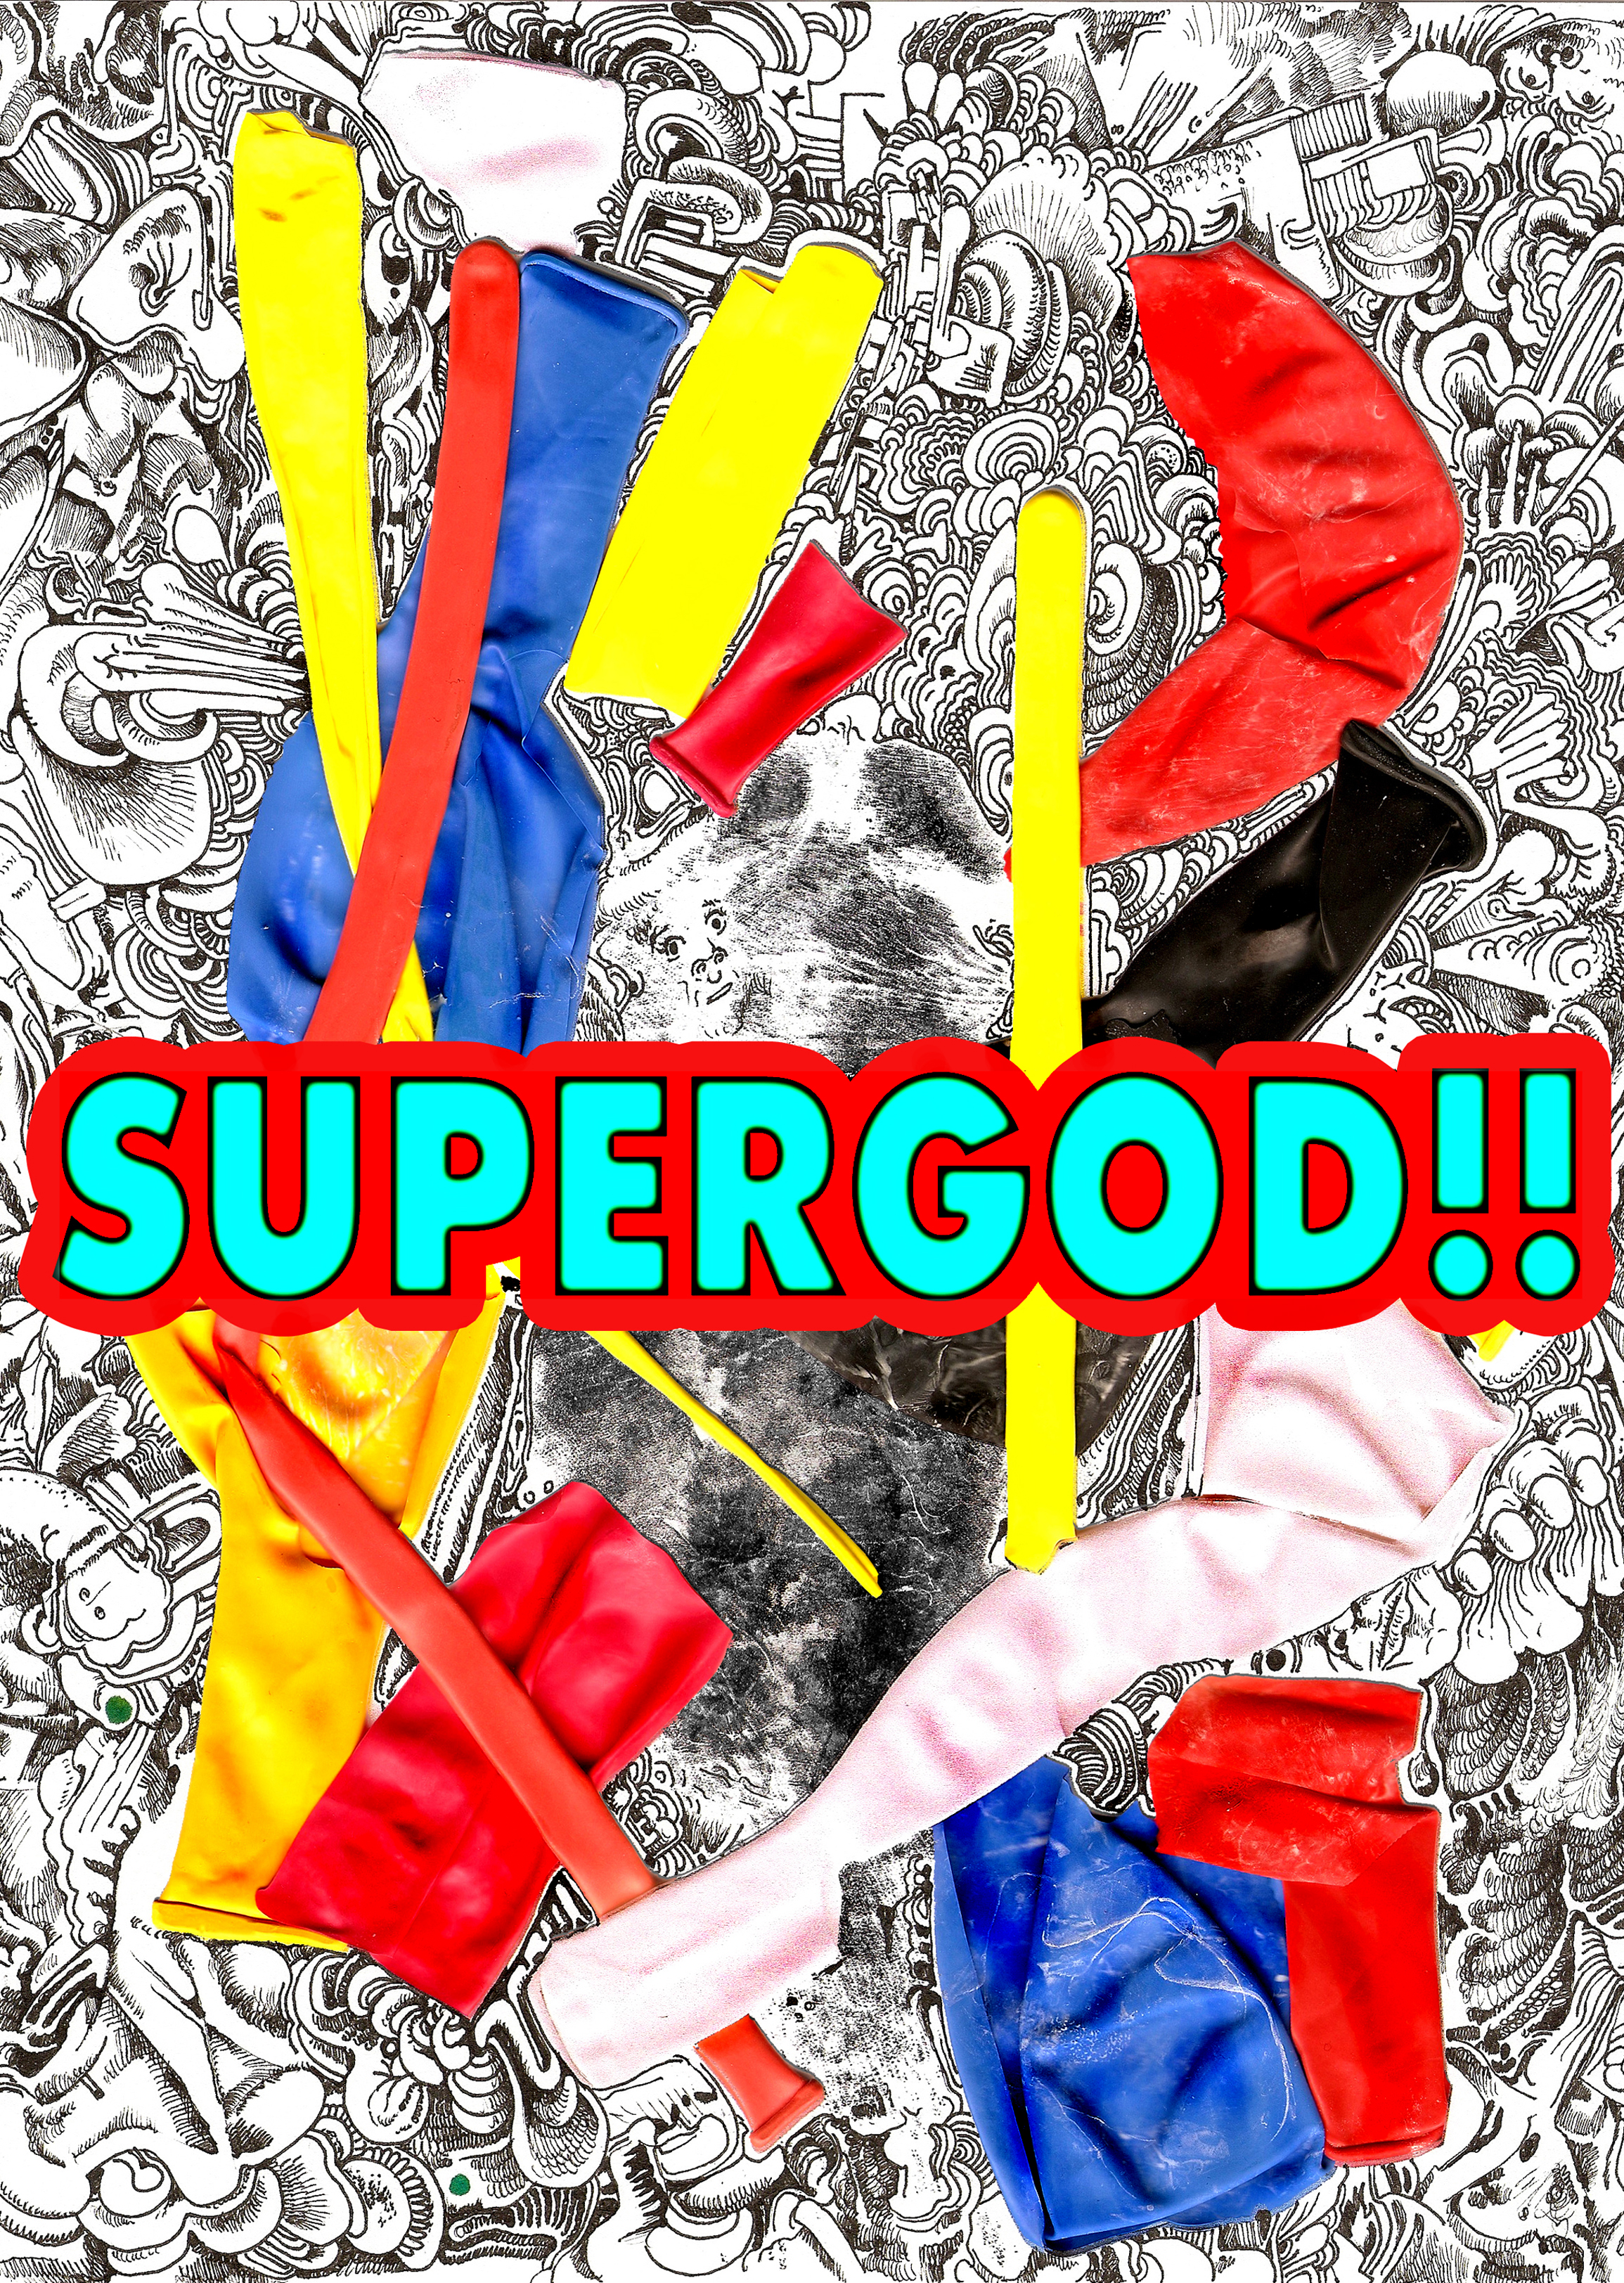 SUPERGOD! The Party Controls The Gun - vol Lazerbeam - front cover